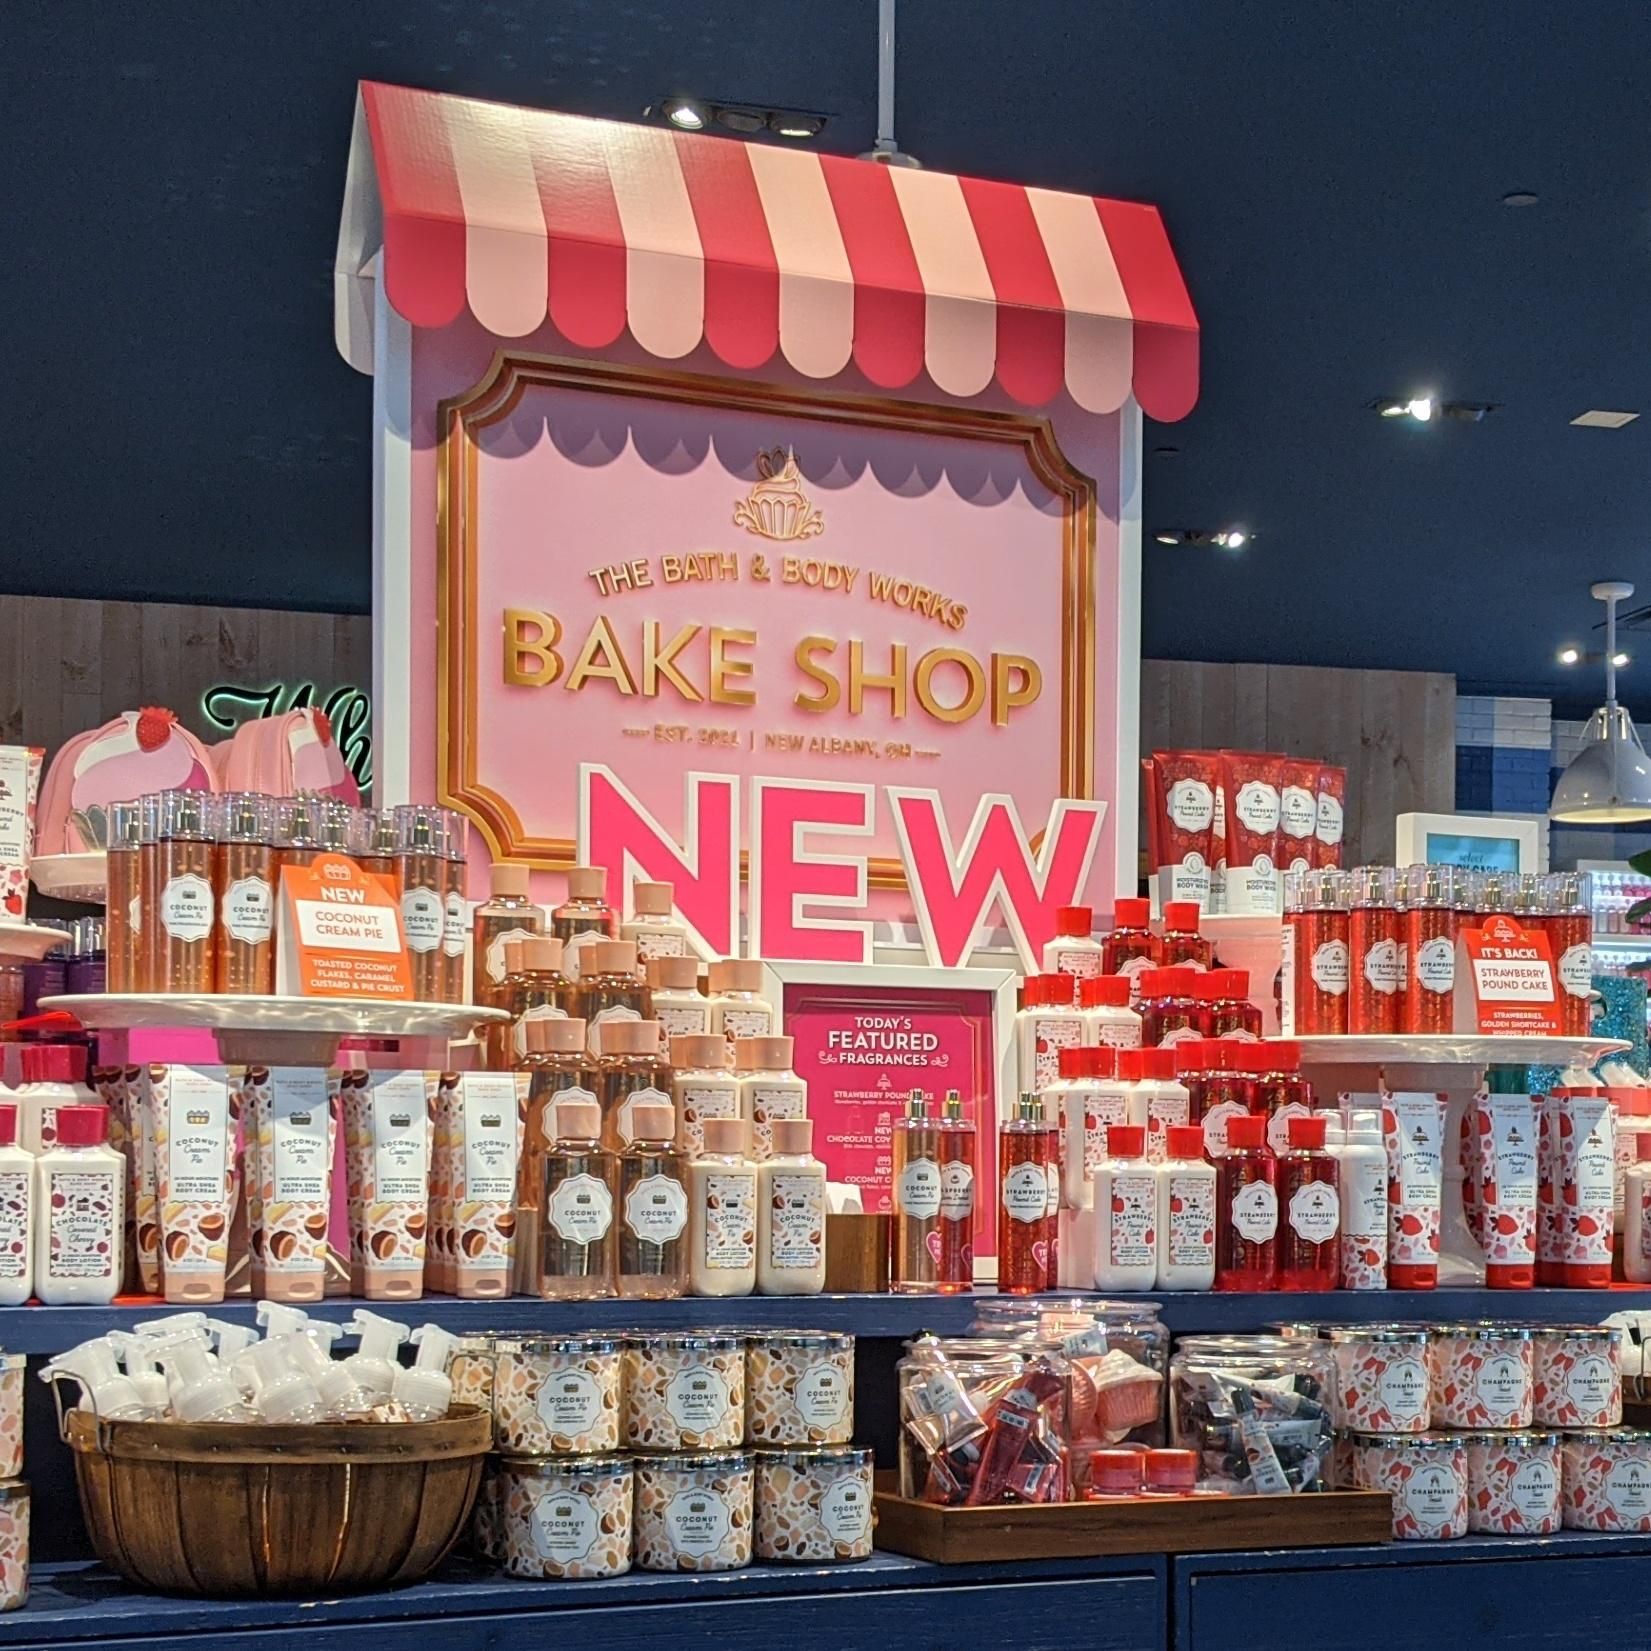 Indulge in Bath & Body Works' Bake Shop from Bath & Body Works